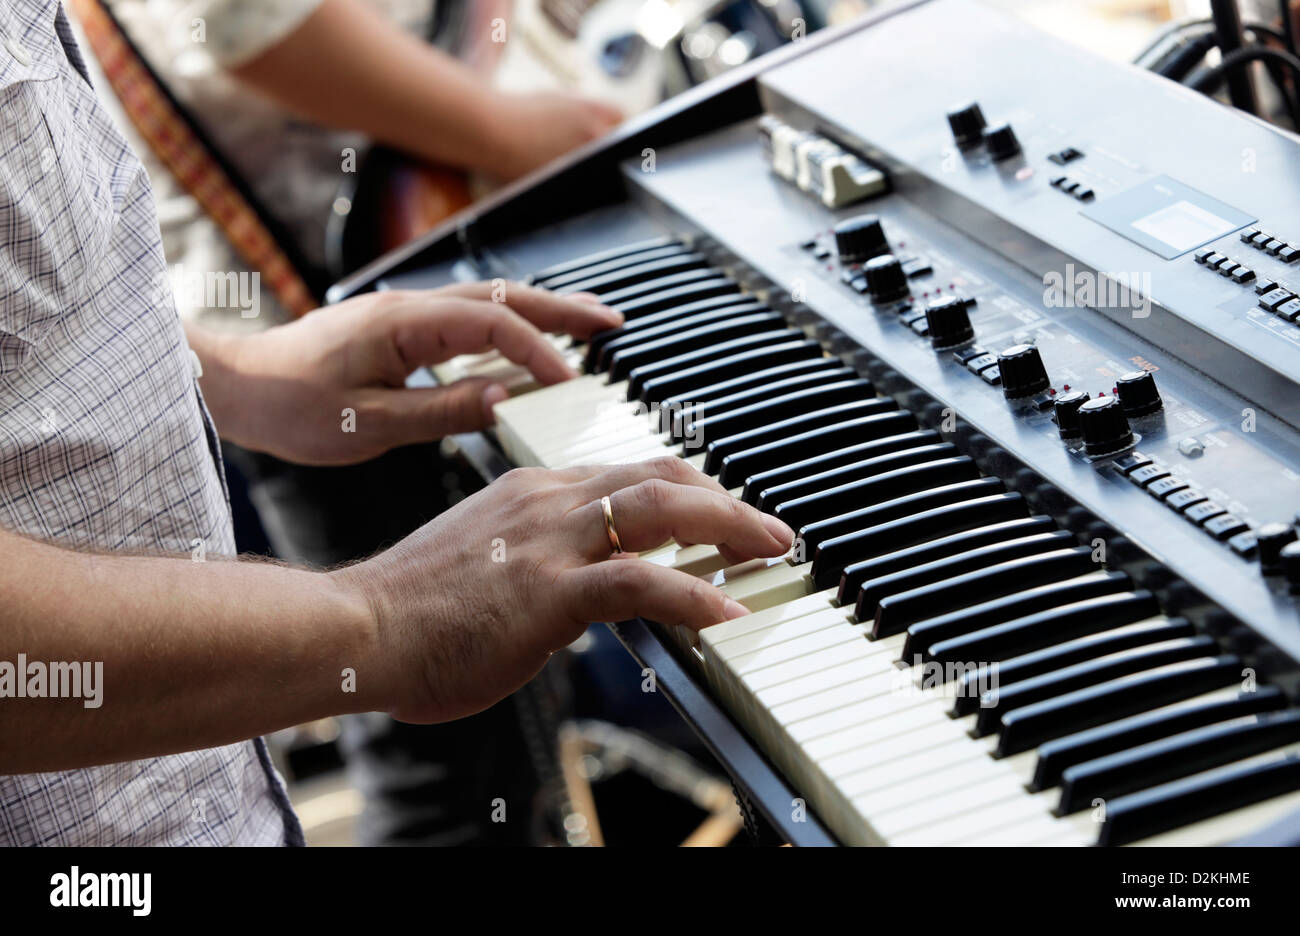 The man plays on an electric piano - Stock Image